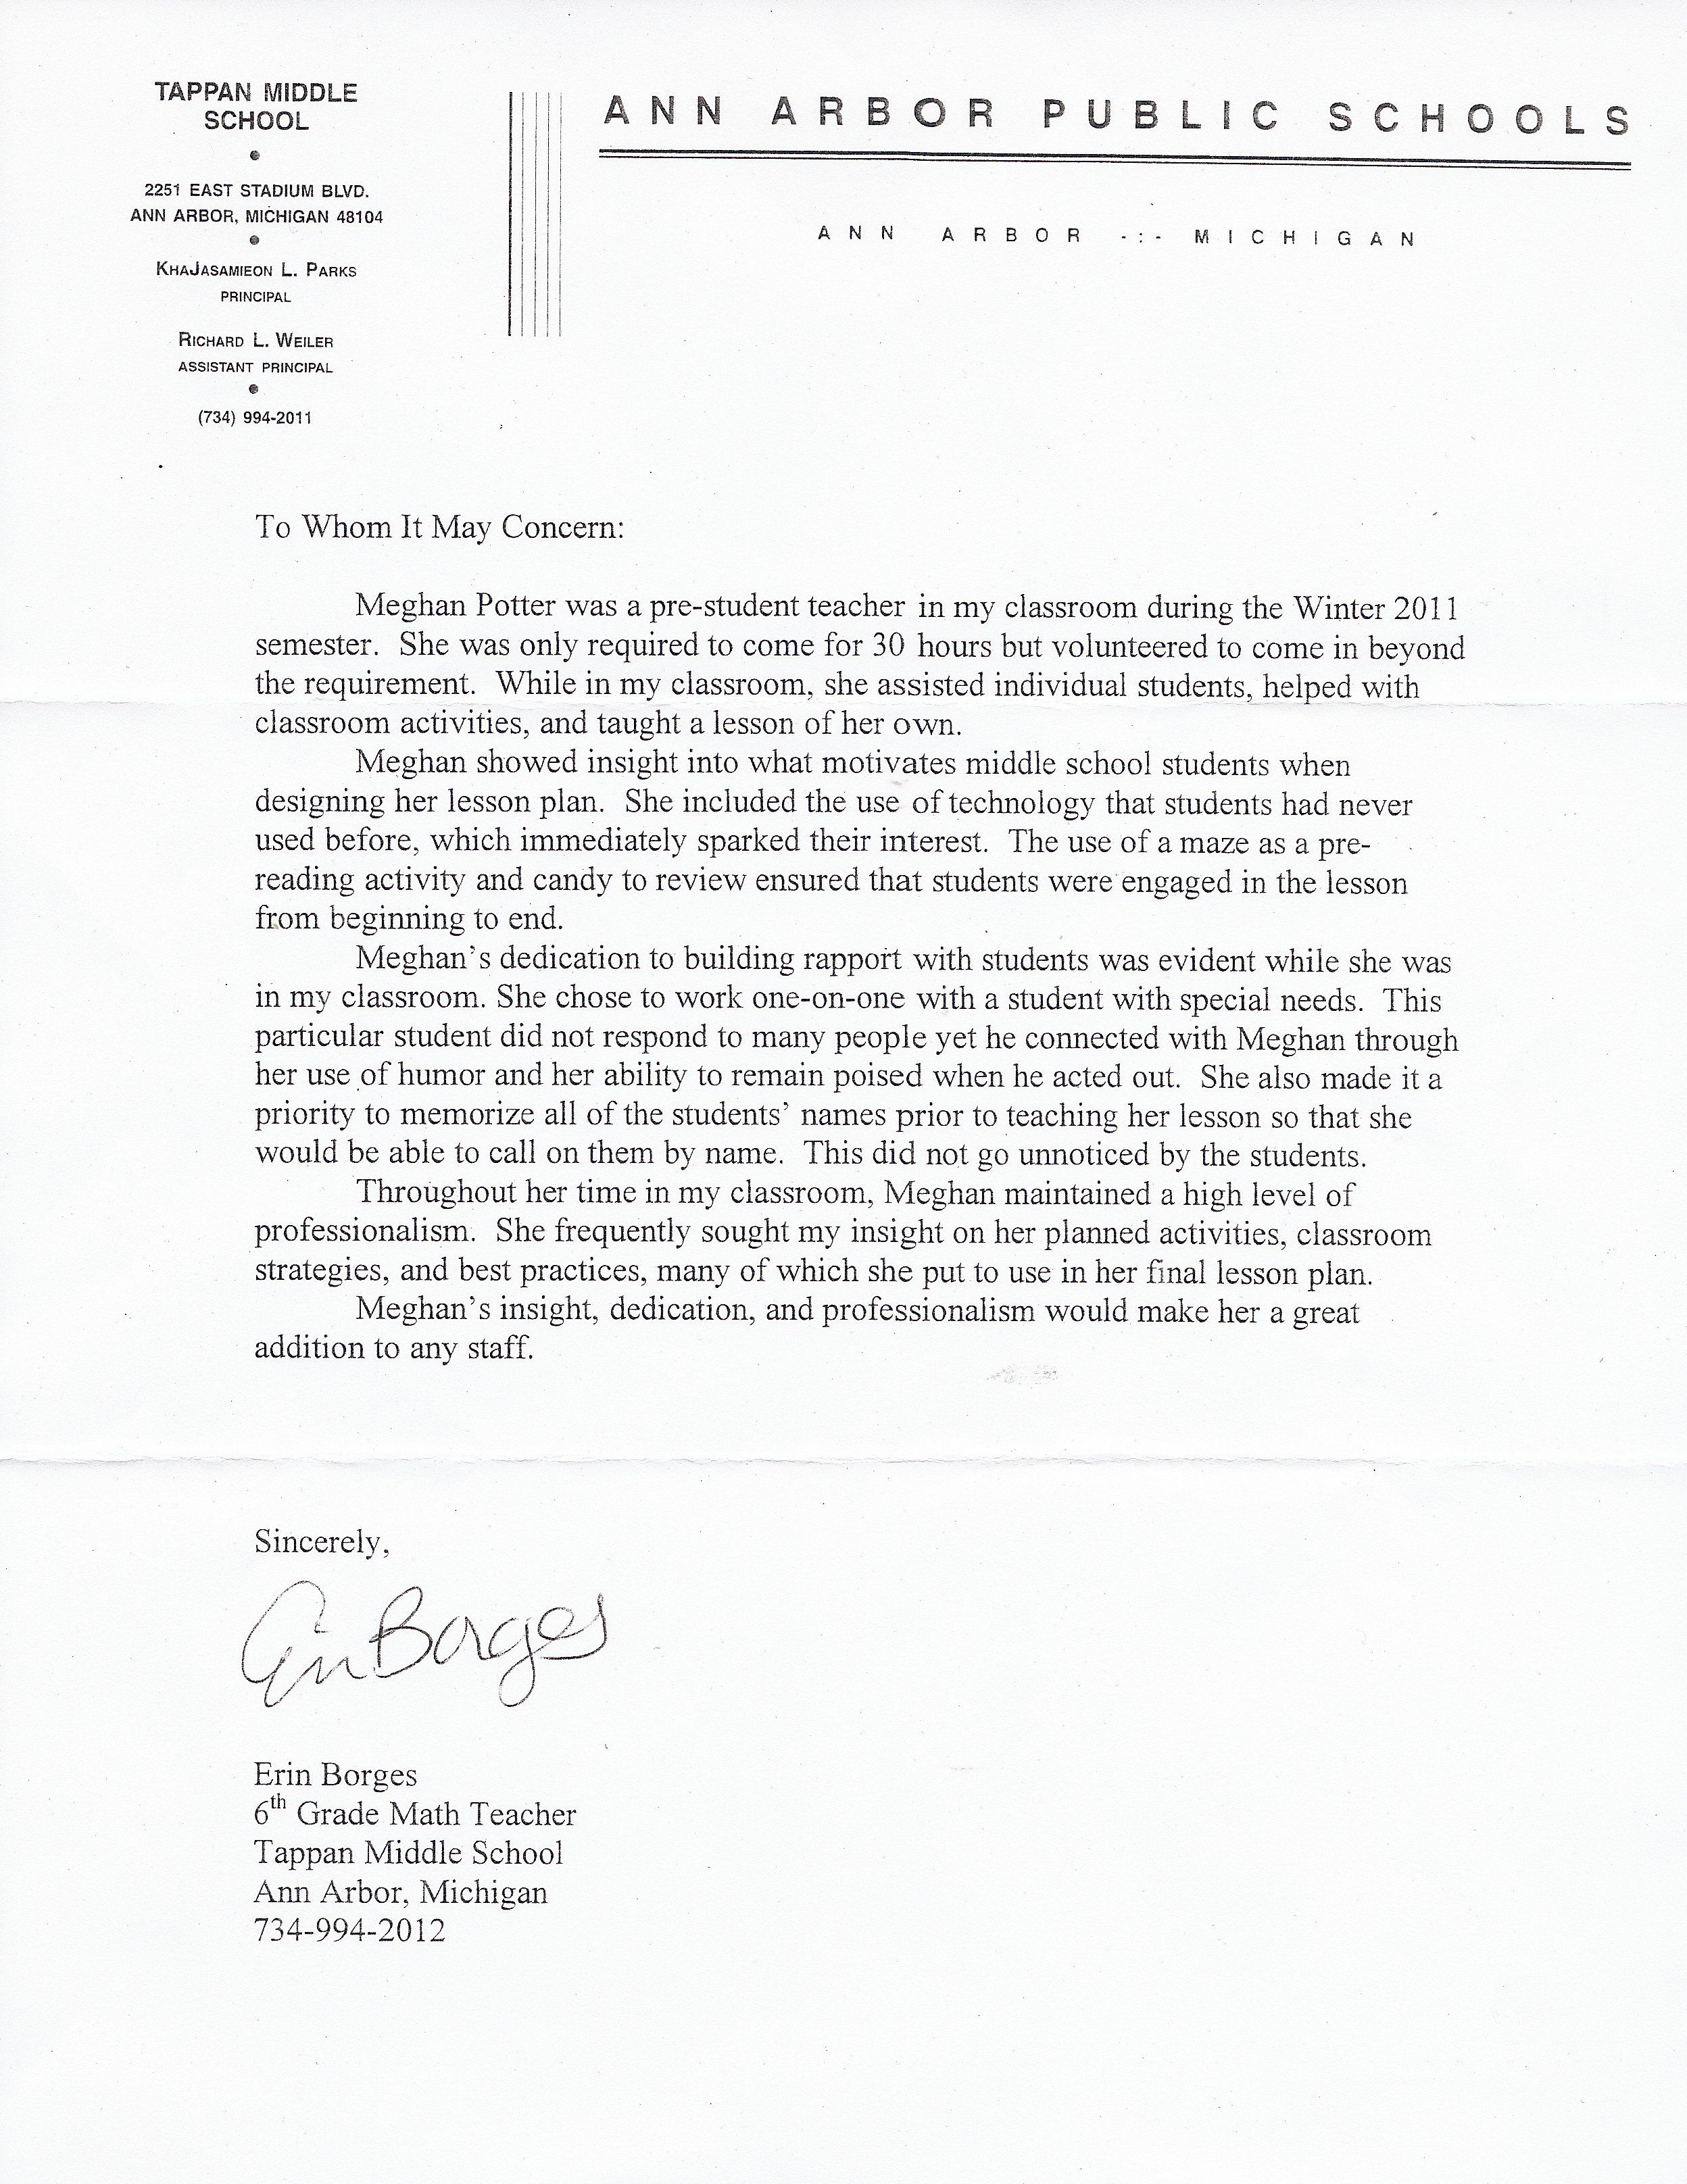 008 Incredible Letter Of Recommendation For Student Teacher From Cooperating Template Inspiration Full